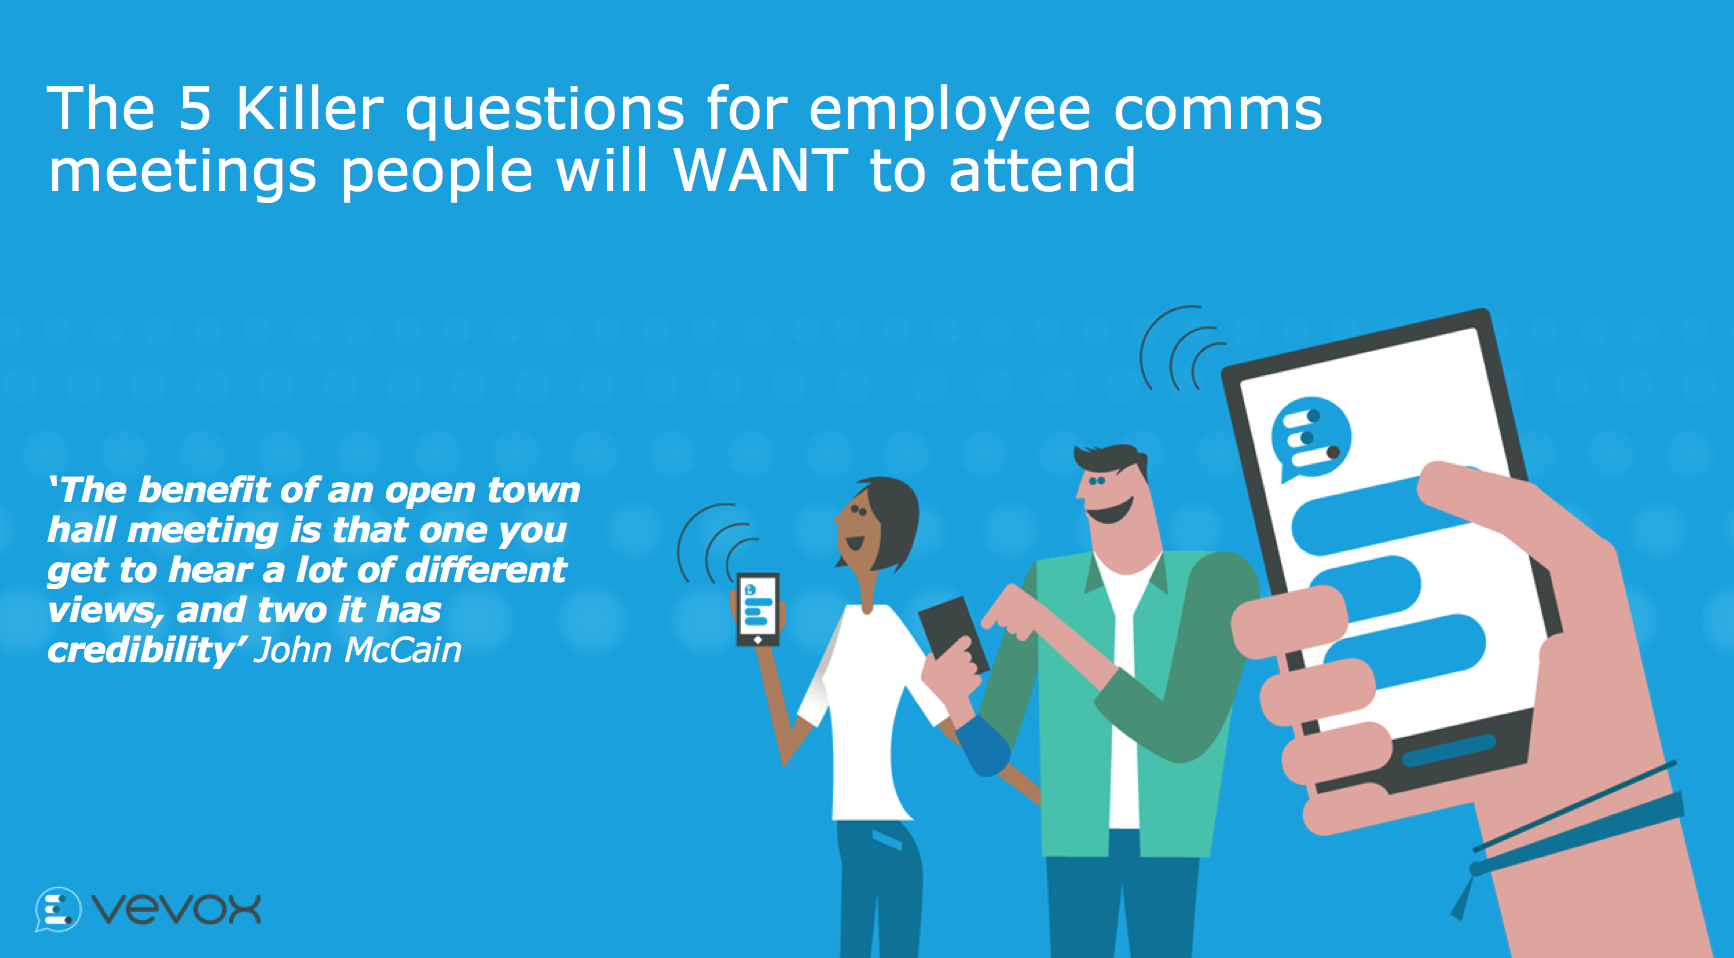 The 5 killer questions for employee comms meetings people will want to attend